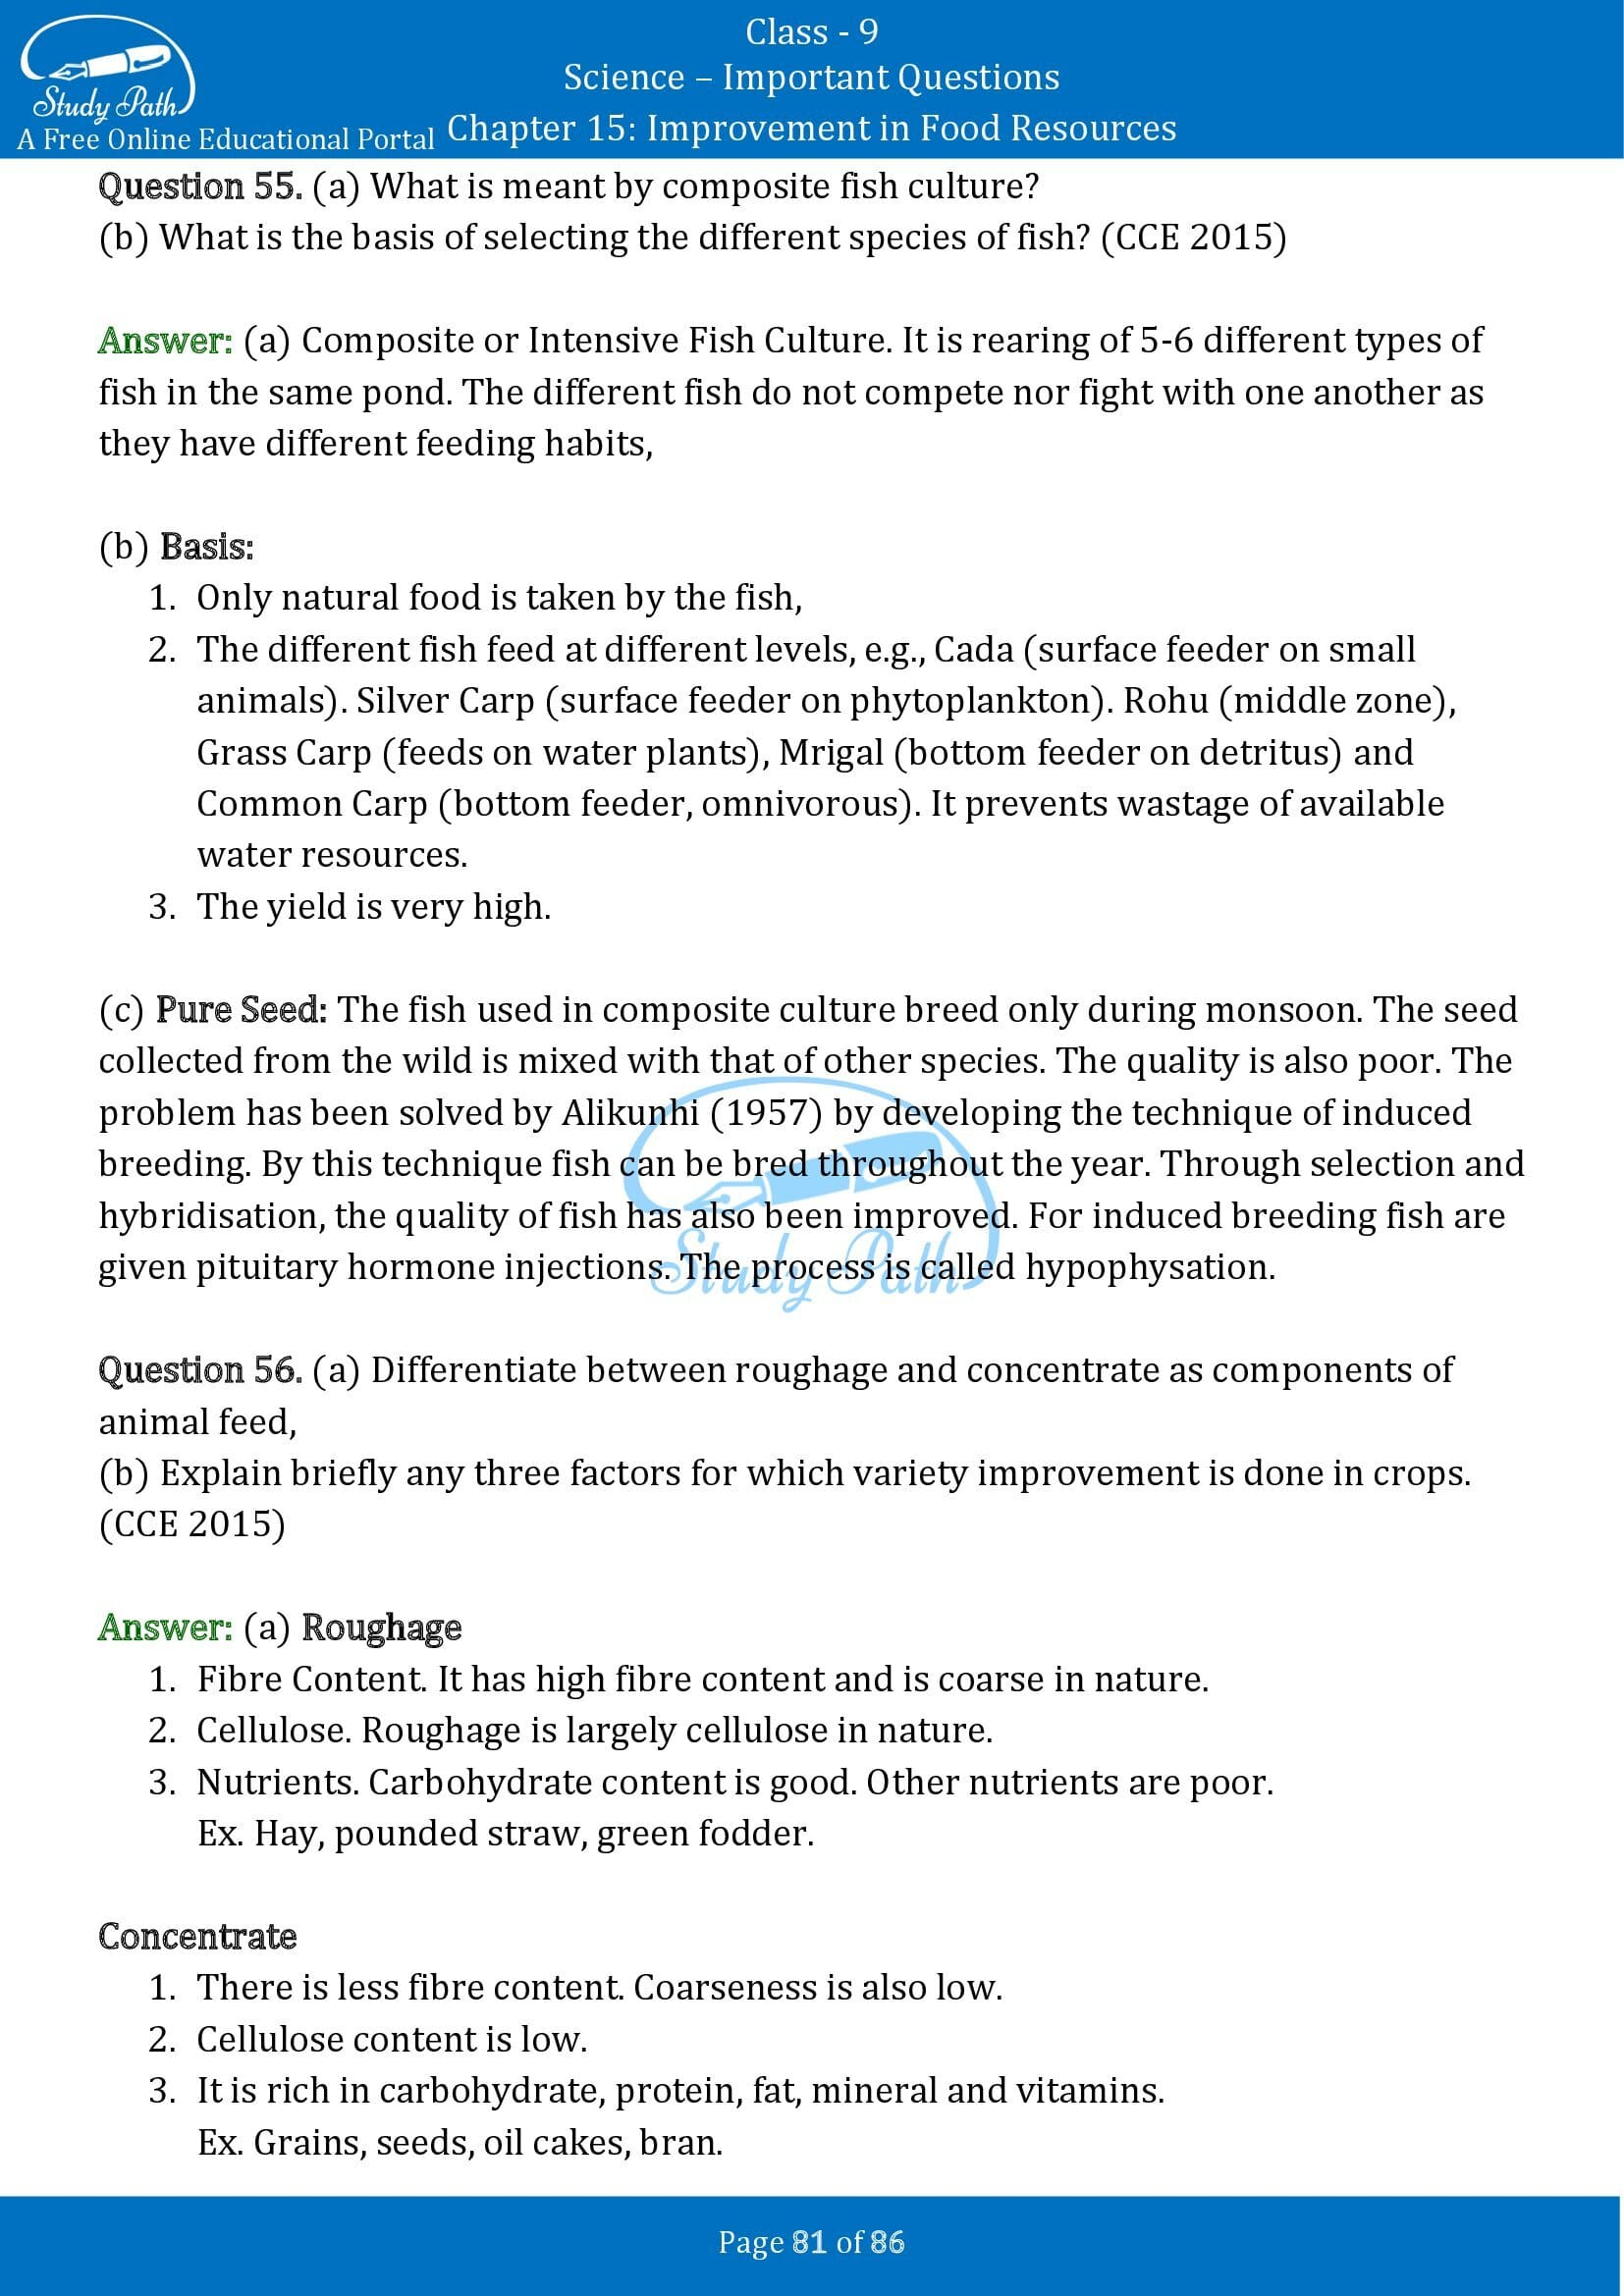 Important Questions for Class 9 Science Chapter 15 Improvement in Food Resources 00081